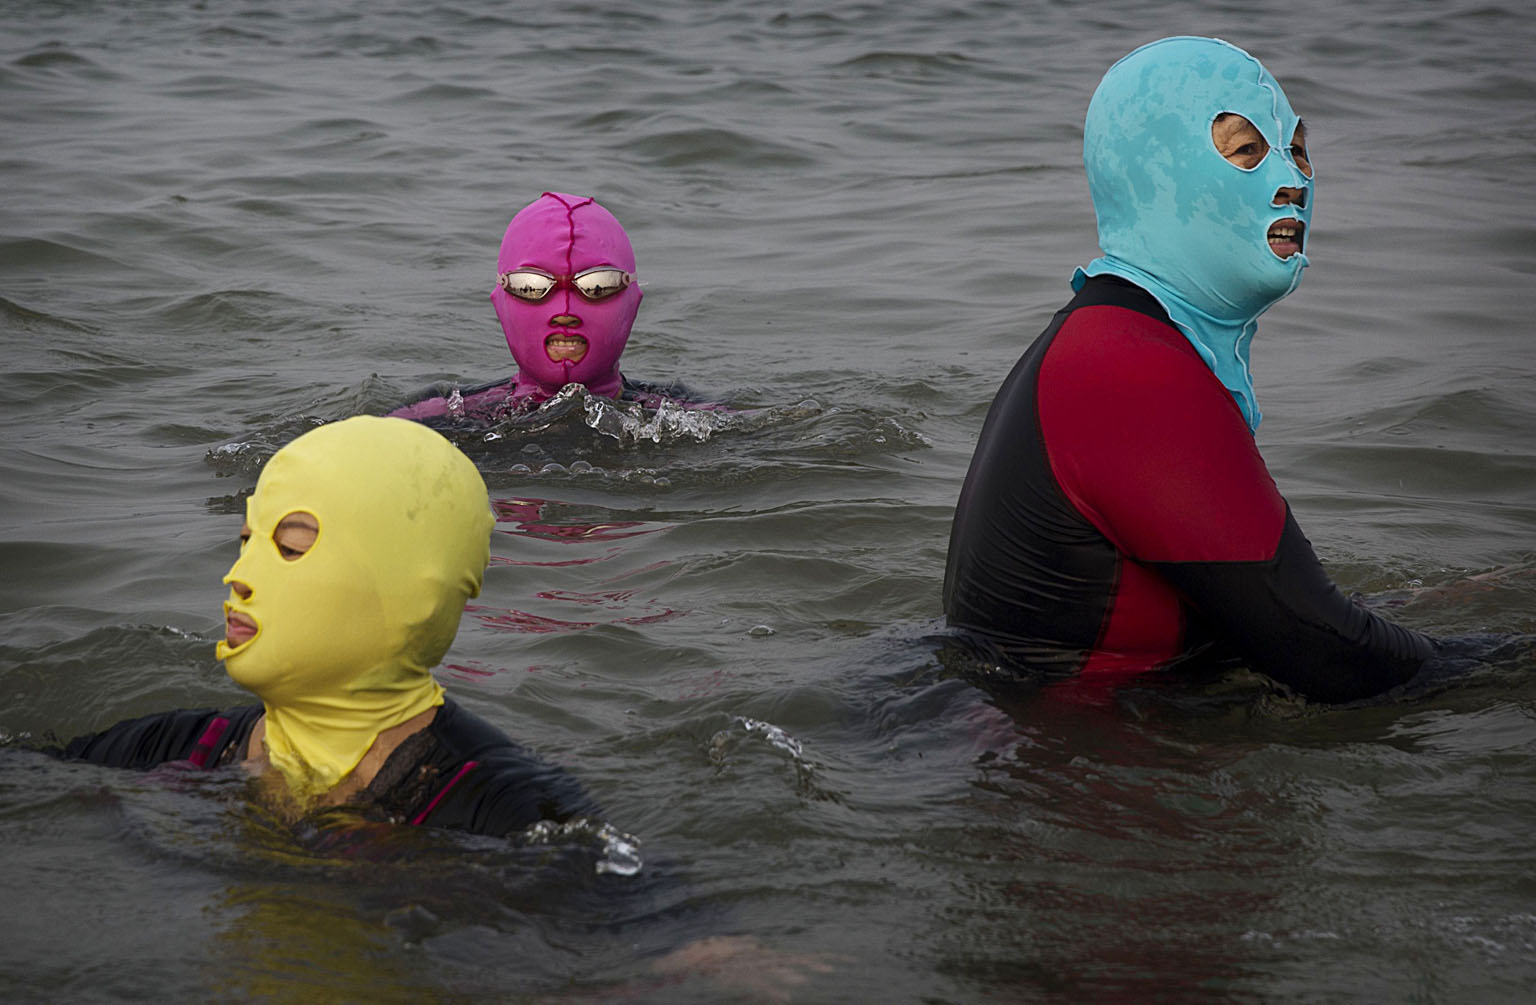 China's Face-kini Becomes Unlikely Global Fashion Hit...QINGDAO, CHINA - AUGUST 21:  A Chinese girl wears a face-kini as she floats in the water on August 21, 2014 on the Yellow Sea in Qingdao, China. The locally designed mask is worn by many local women to protect them from jellyfish stings, algae and the sun's ultraviolet rays.  (Photo by Kevin Frayer/Getty Images)